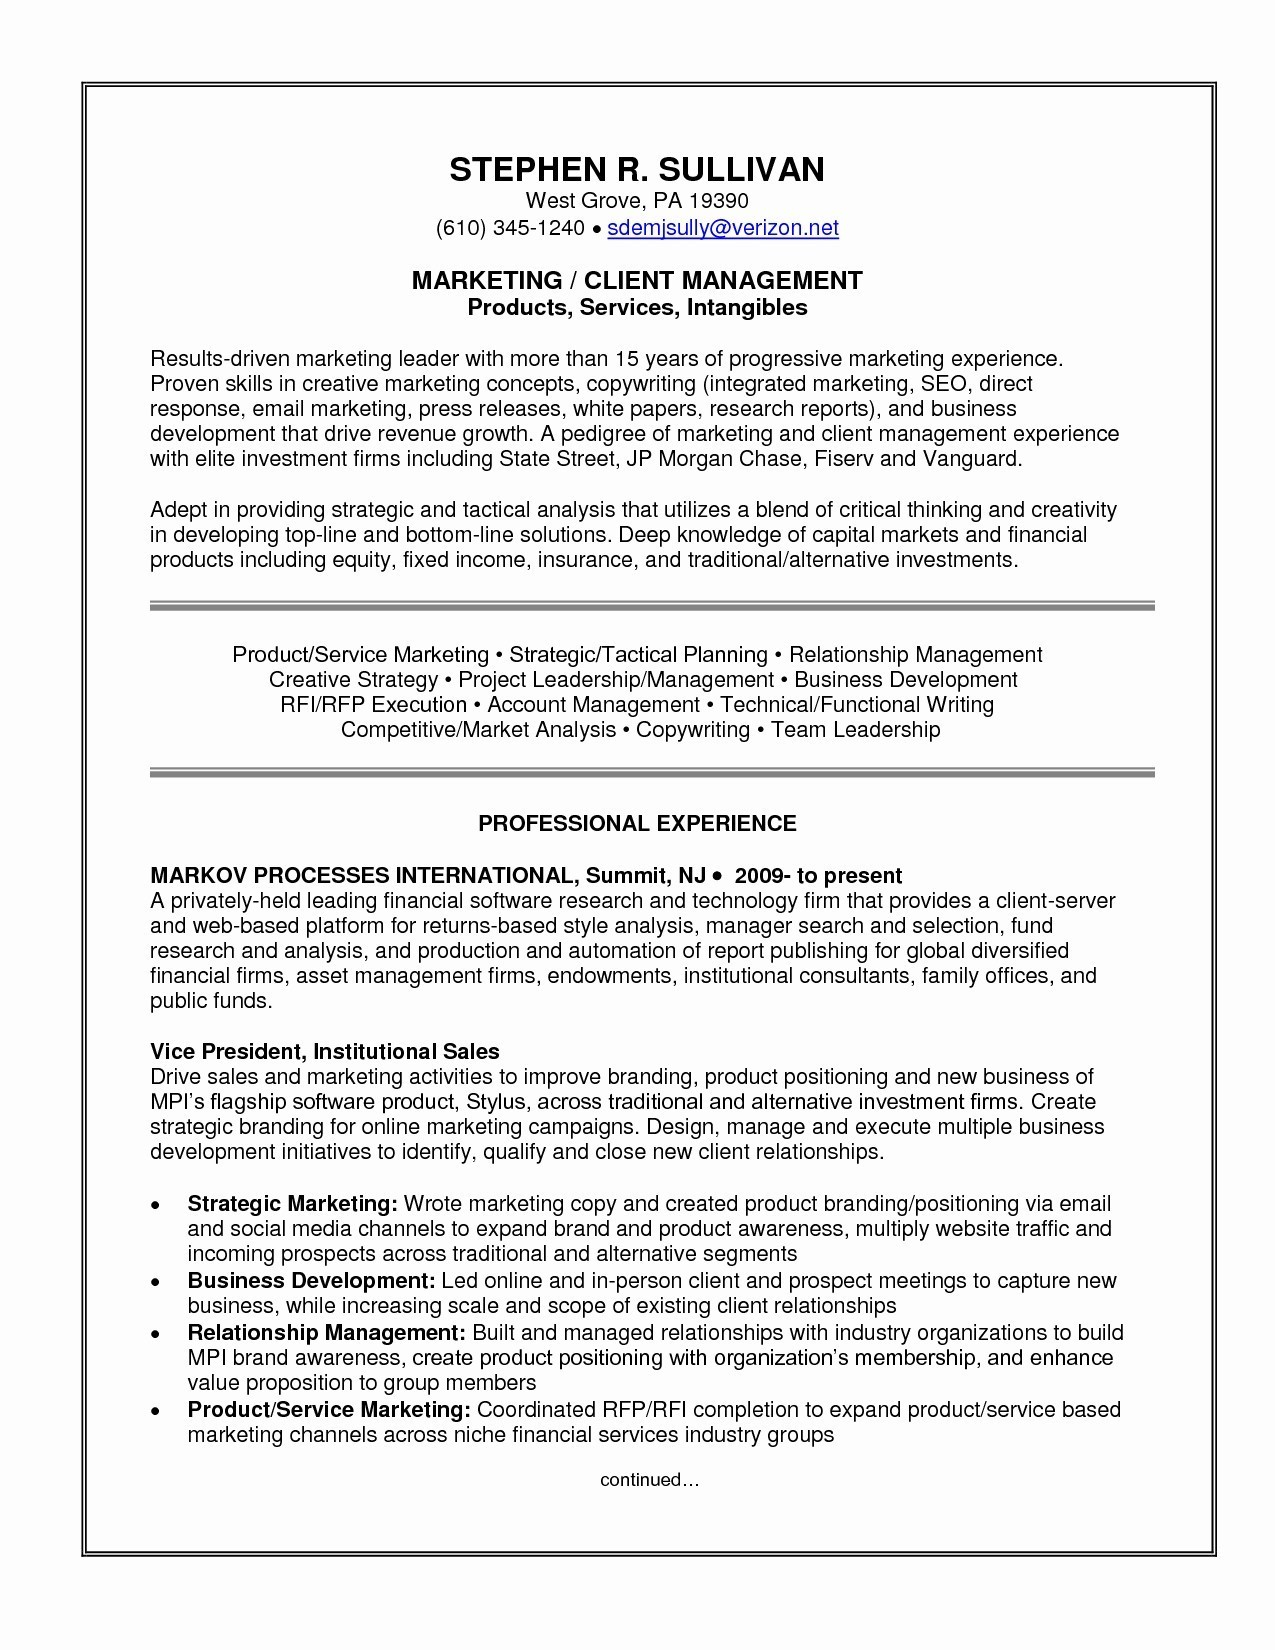 Hr Generalist Resume - Hr Generalist Resume Luxury 30 Inspirational Sample Hr Generalist